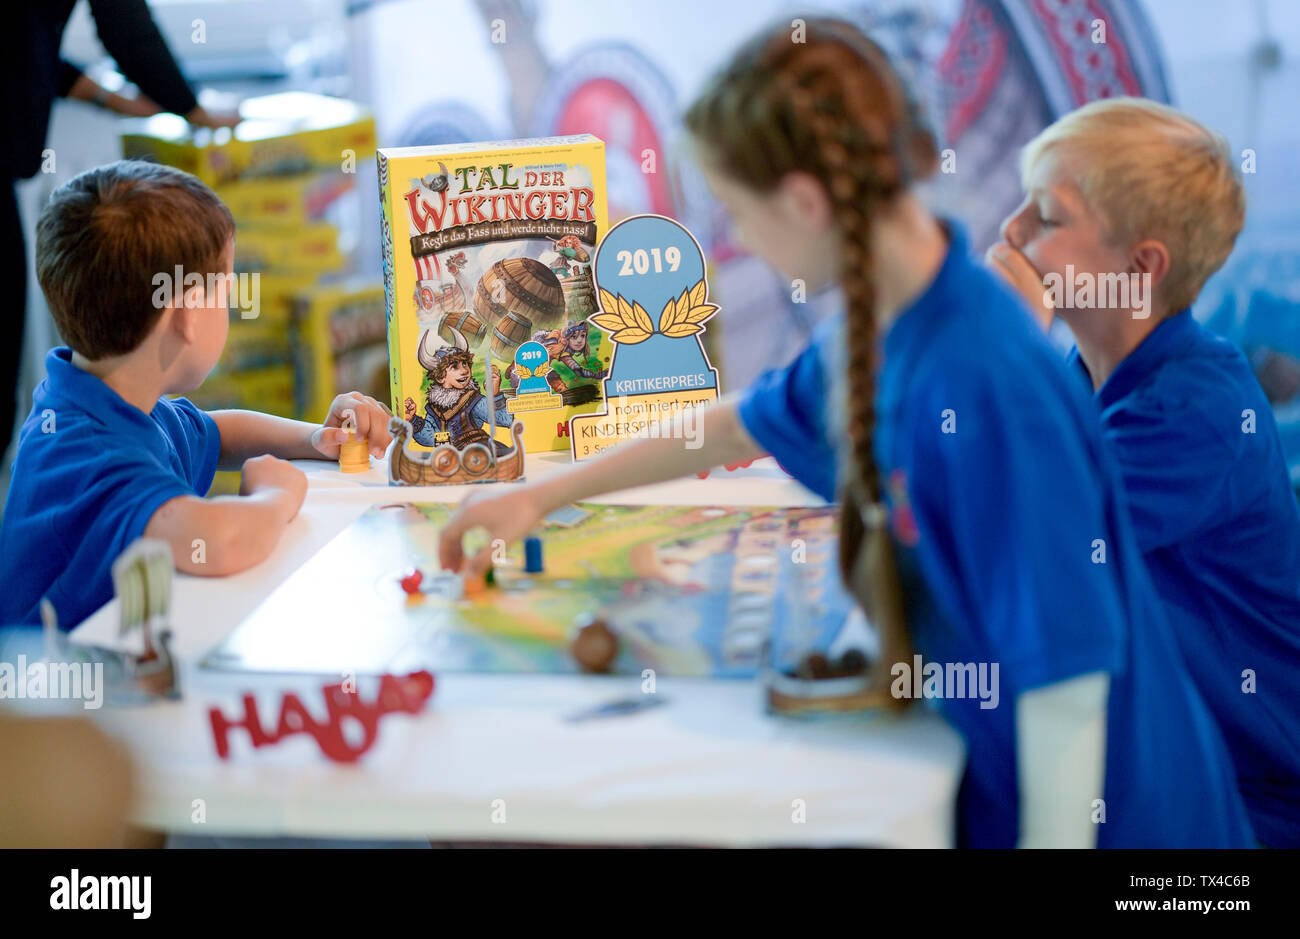 """Hamburg, Germany. 24th June, 2019. Children of class 2c of the Wesperloh primary school from the district Osdorf play the board game """"Valley of the Vikings"""". It was awarded Child's Game of the Year. Credit: Axel Heimken/dpa/Alamy Live News Stock Photo"""